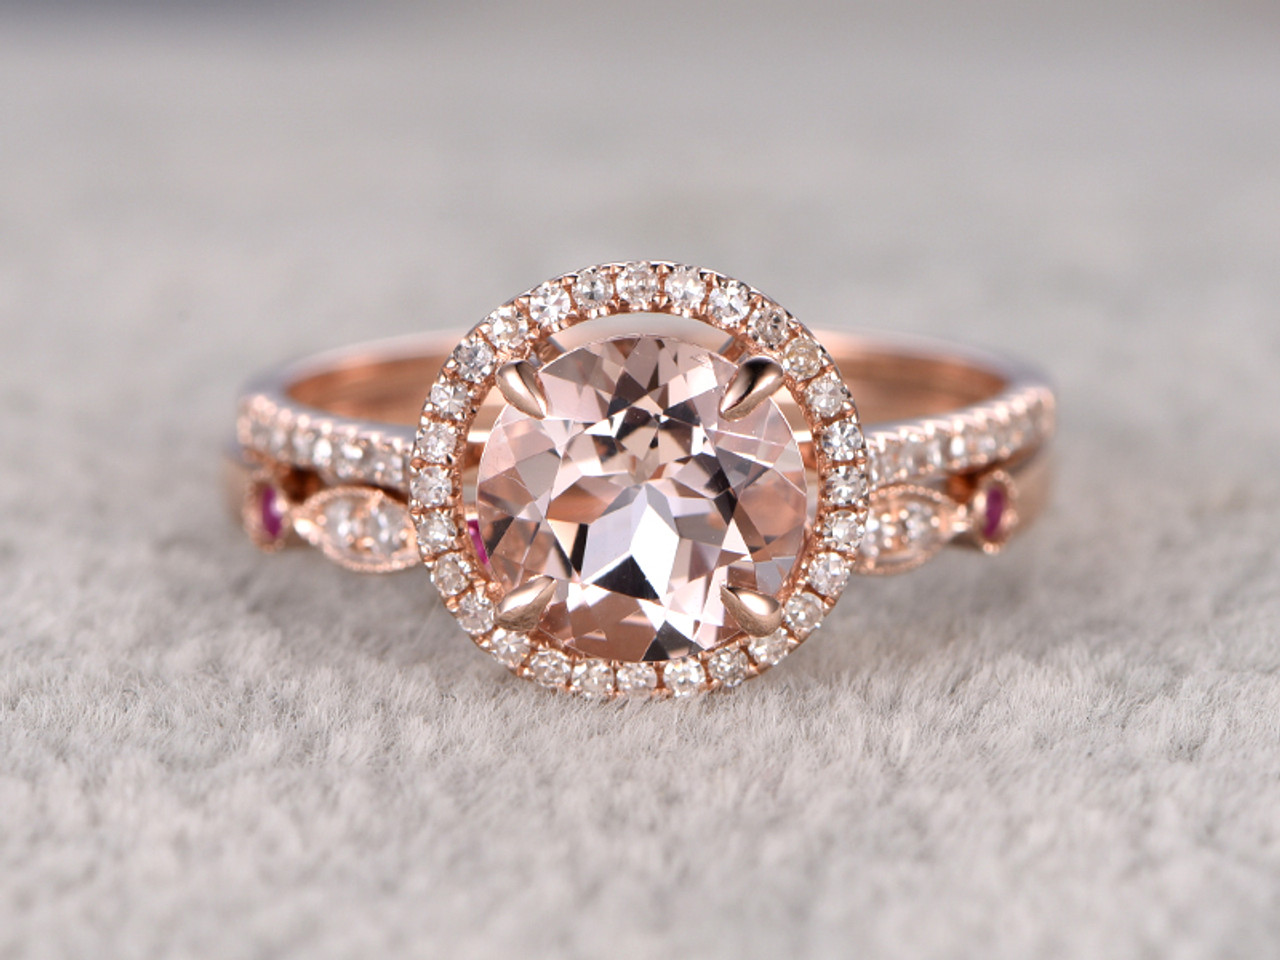 18 carat round morganite wedding set diamond bridal ring 14k rose gold ruby art deco curved - Morganite Wedding Ring